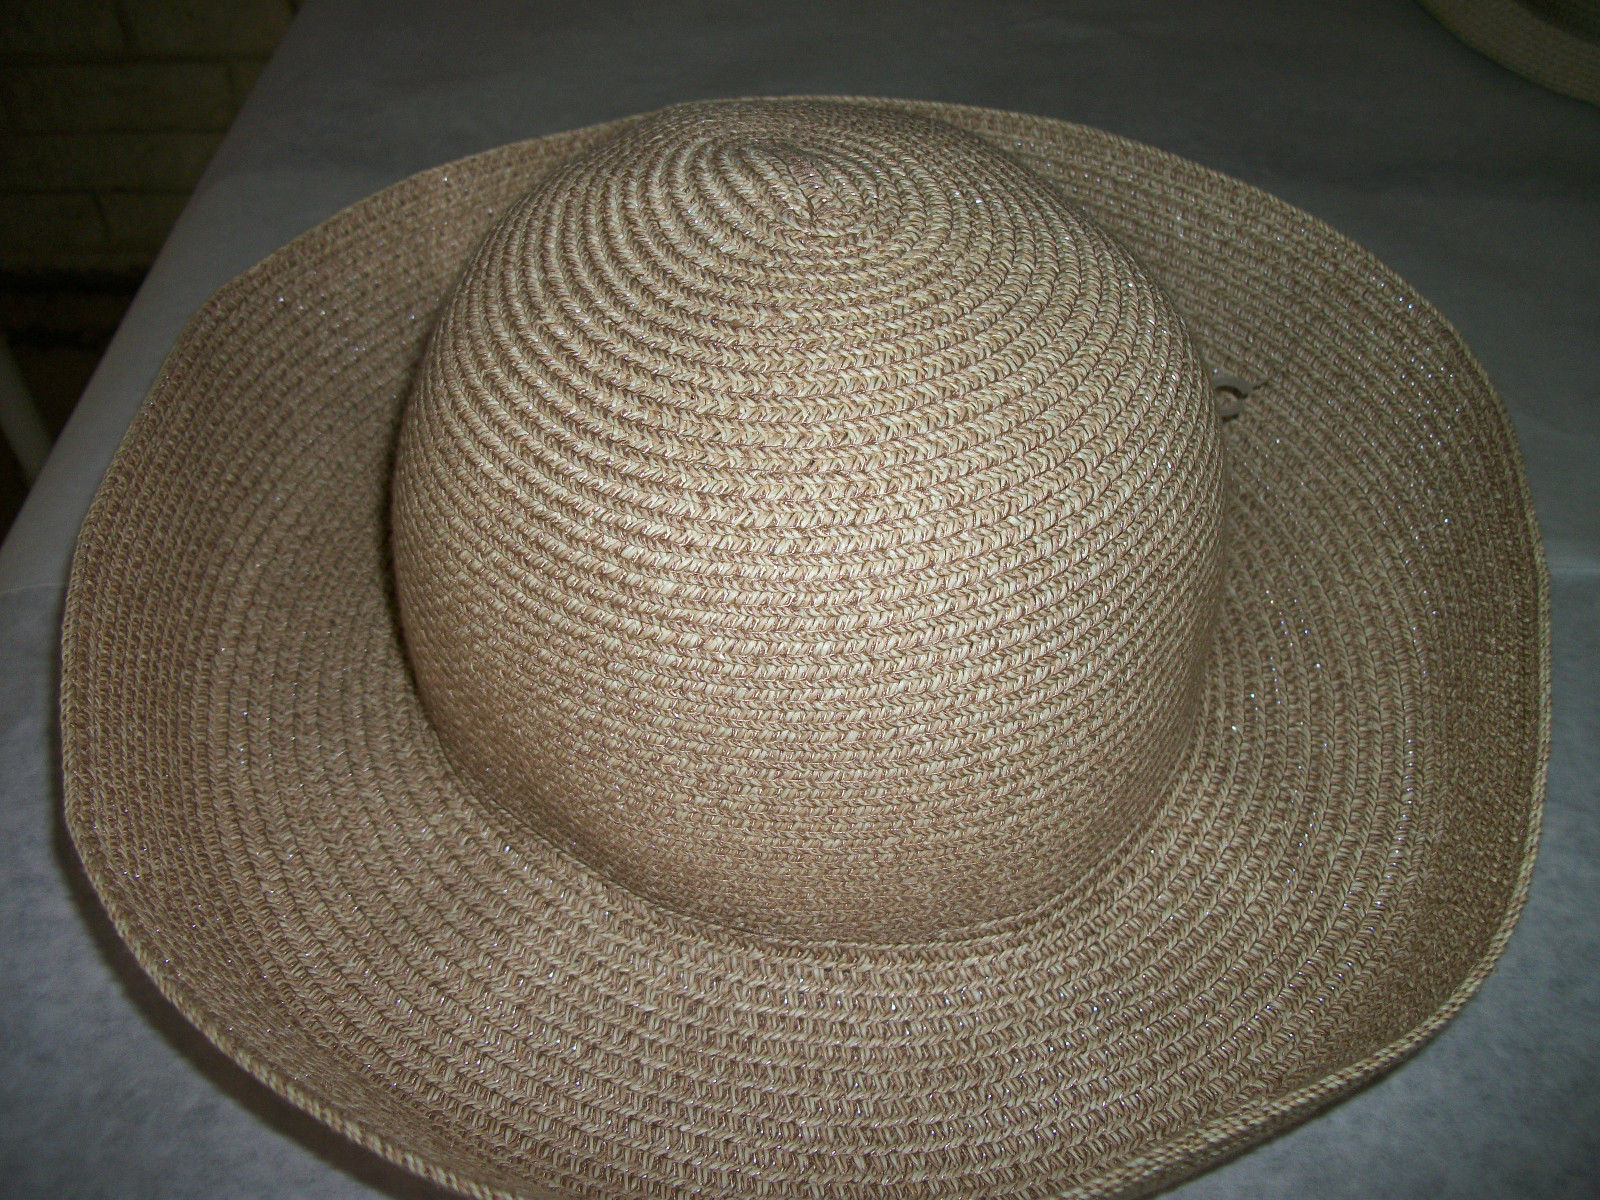 8f651a857bb56 ... BETMAR Women s Wide Brimmed Straw Sun Hat packable w RINK BOW